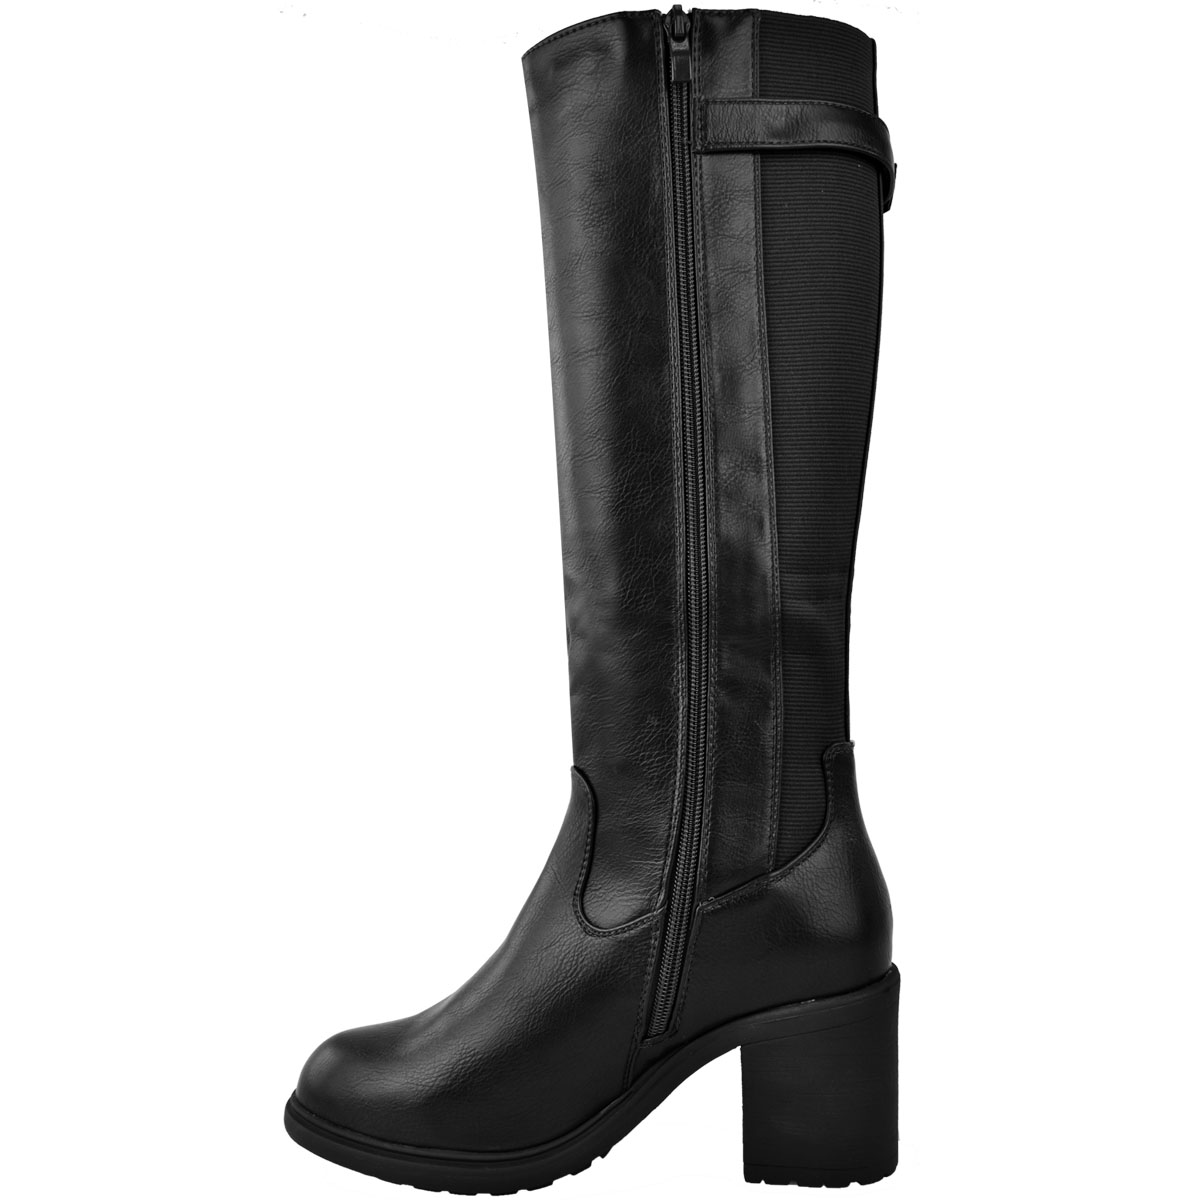 Womens-Ladies-Calf-High-Boots-Riding-Stretch-Wide-Leg-Low-Block-Heel-Winter-Size thumbnail 5